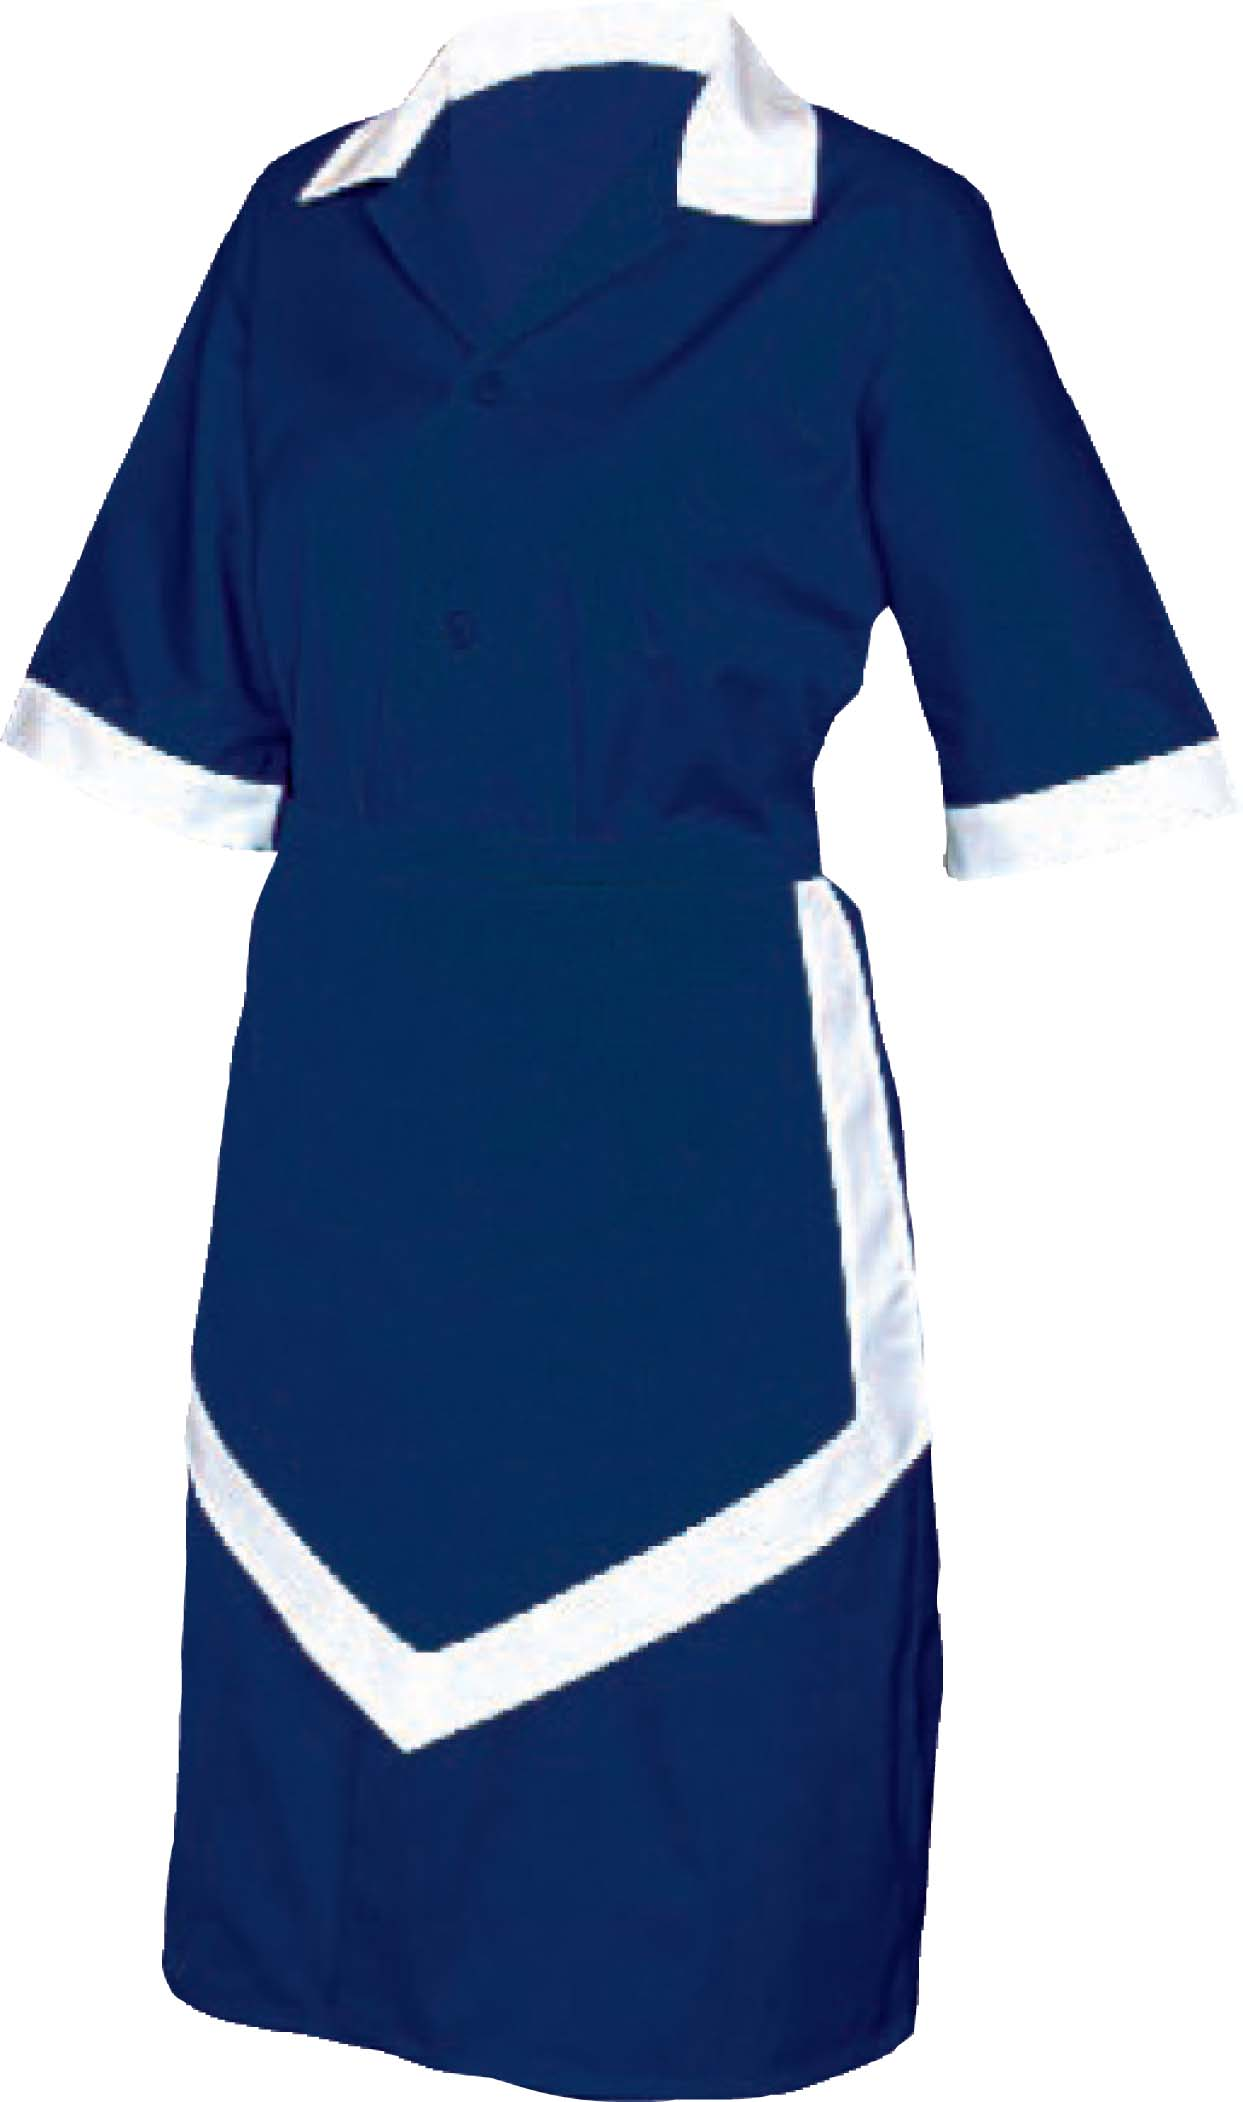 LADIES HOUSEKEEPING 3PC - NAVY AND WHITE - X SMALL